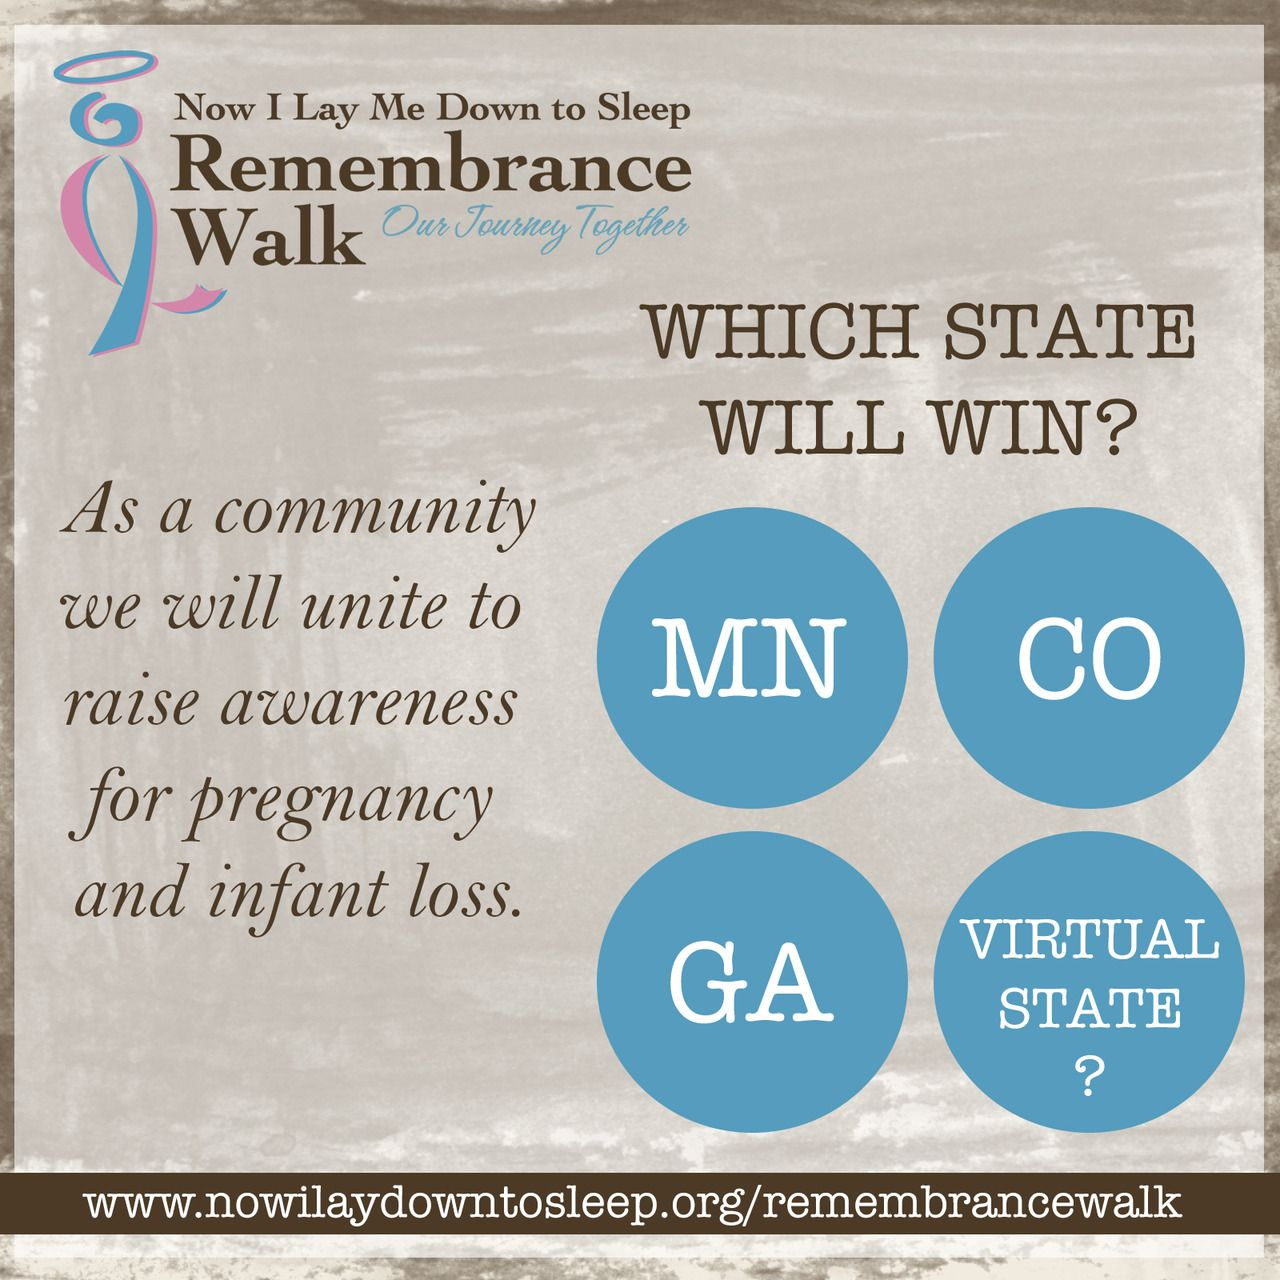 Which state will get the most registrations for our Remembrance Walk kick-off?  You have the chance to ignite a whole new community to join us.  Only two weeks left for the discounted registration price!!!  https://www.nowilaymedowntosleep.org/remembrancewalk/